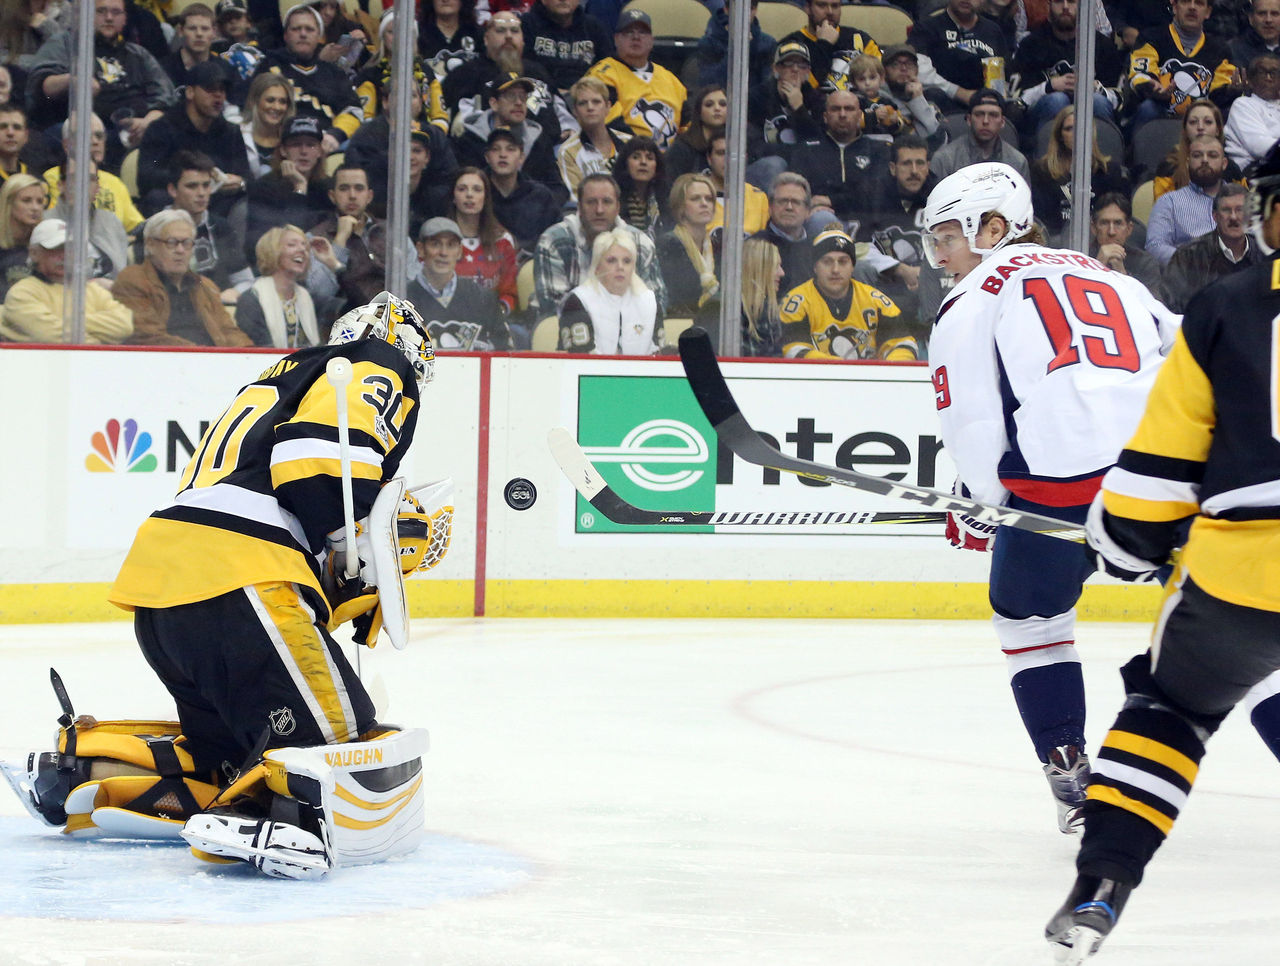 Cropped 2017 01 17t010533z 374525096 nocid rtrmadp 3 nhl washington capitals at pittsburgh penguins